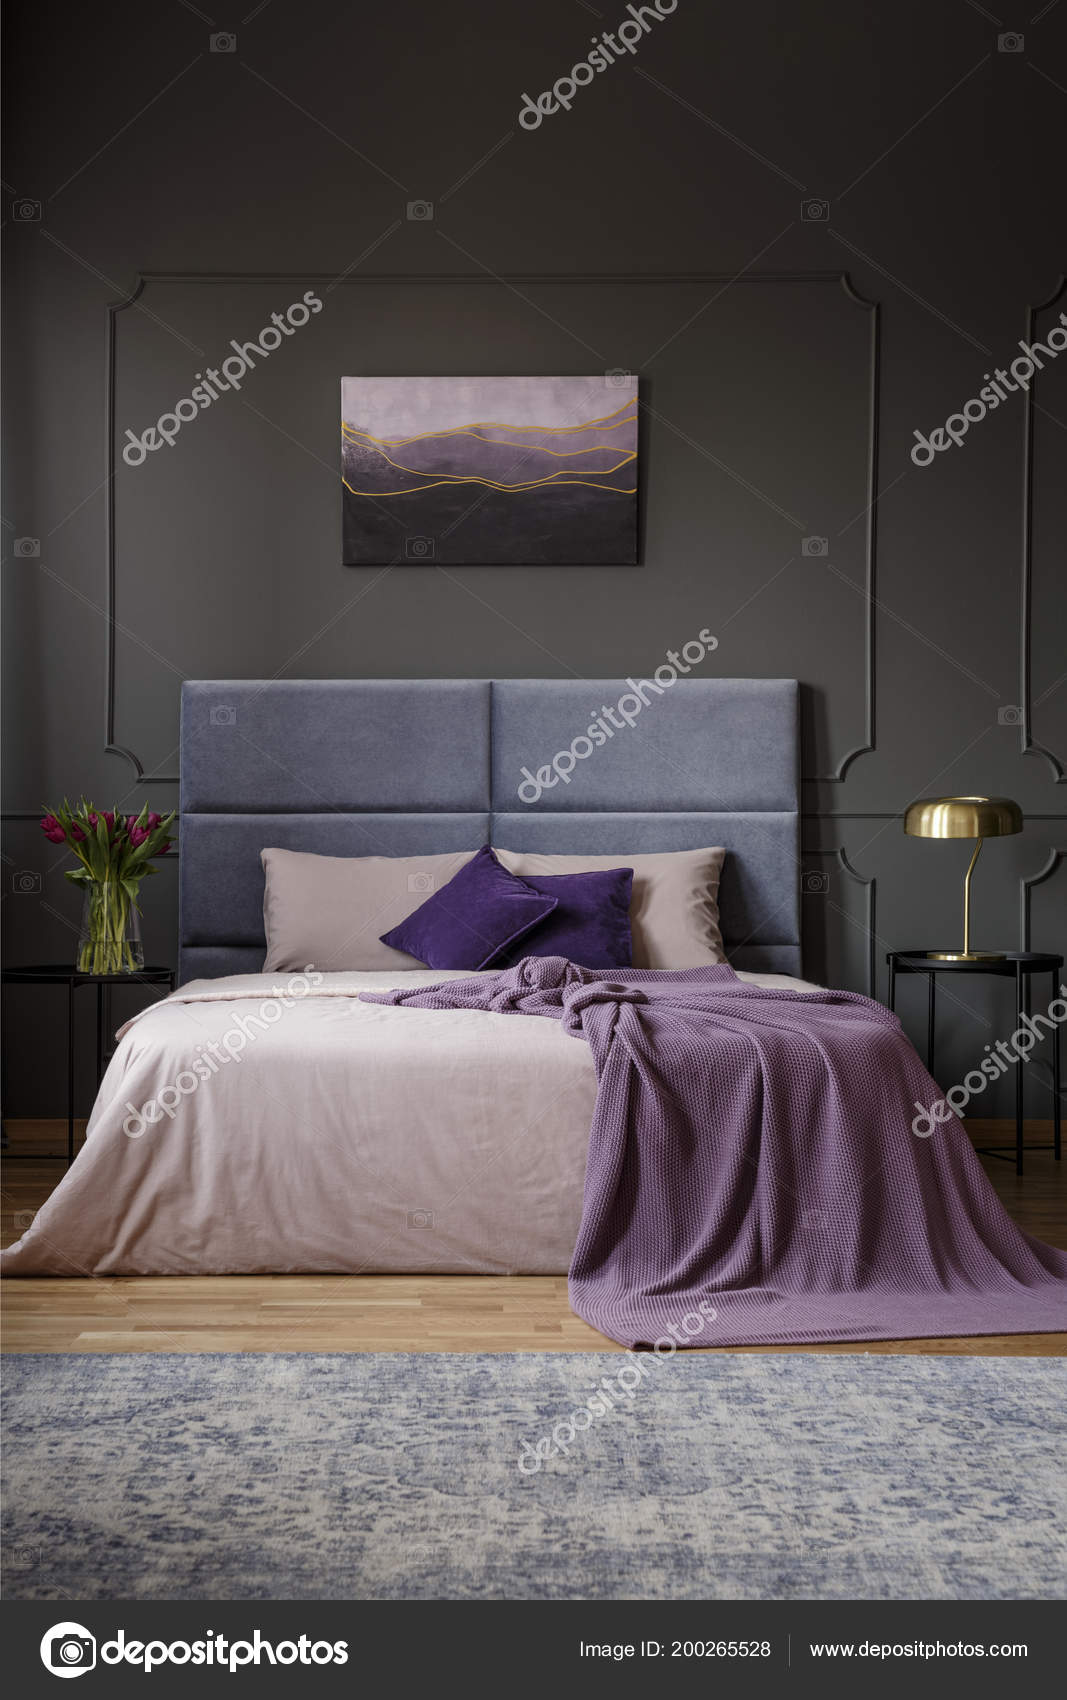 Violet Blanket Bed Headboard Spacious Bedroom Interior Painting Grey Wall Stock Photo C Photographee Eu 200265528